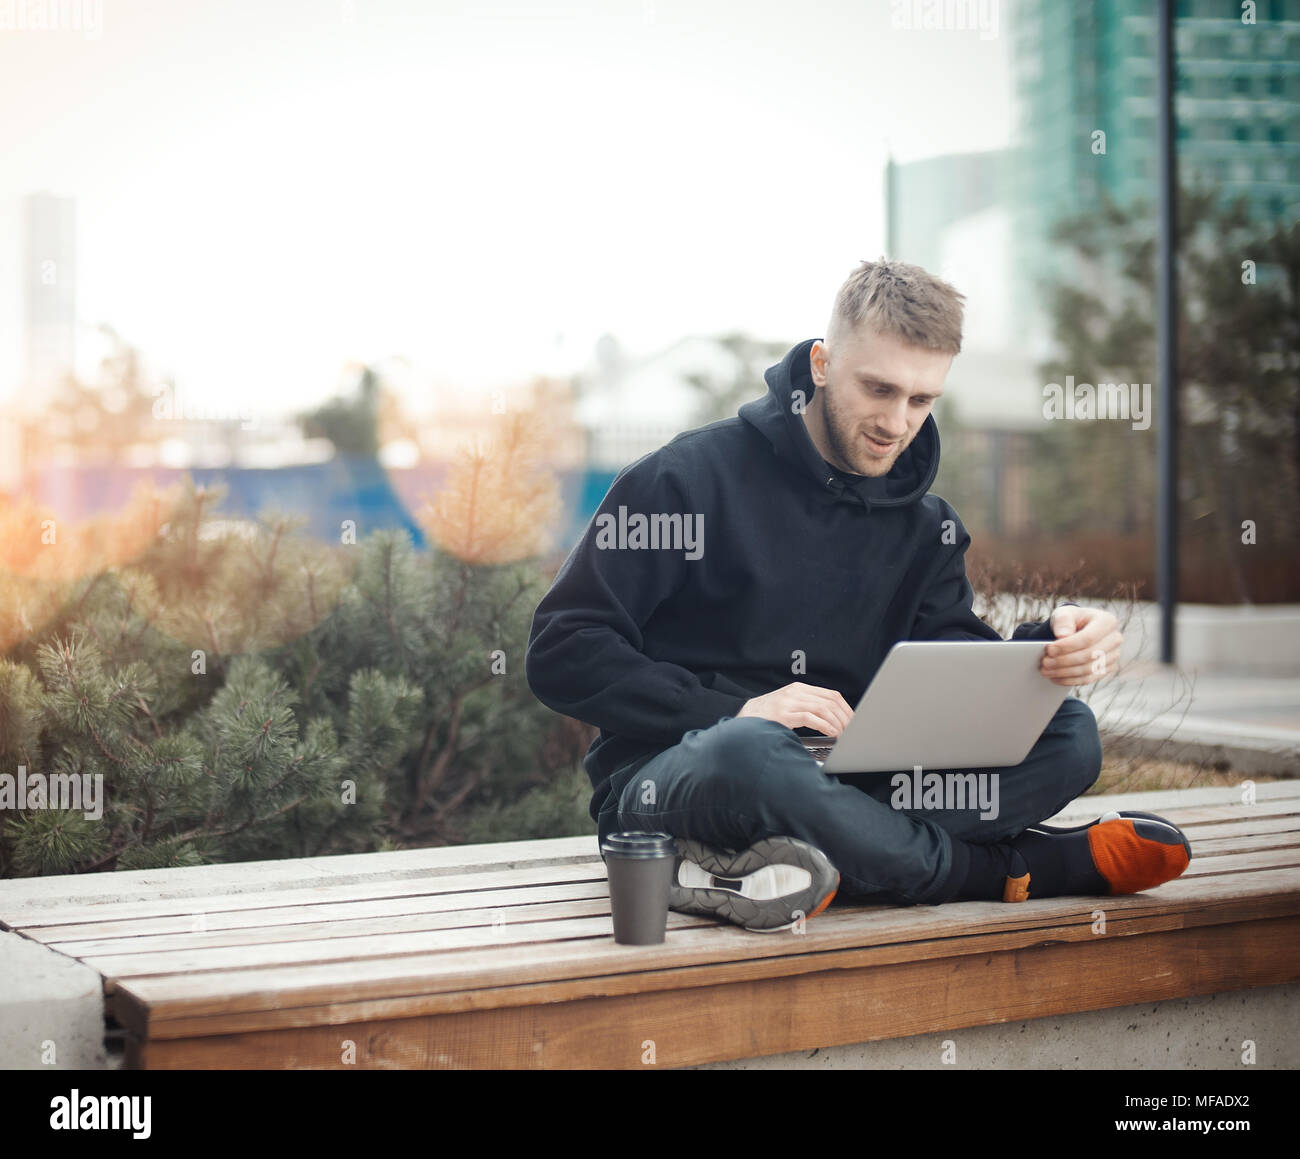 Smiling young man holding laptop on knees. Black coffee cup is next to him. - Stock Image